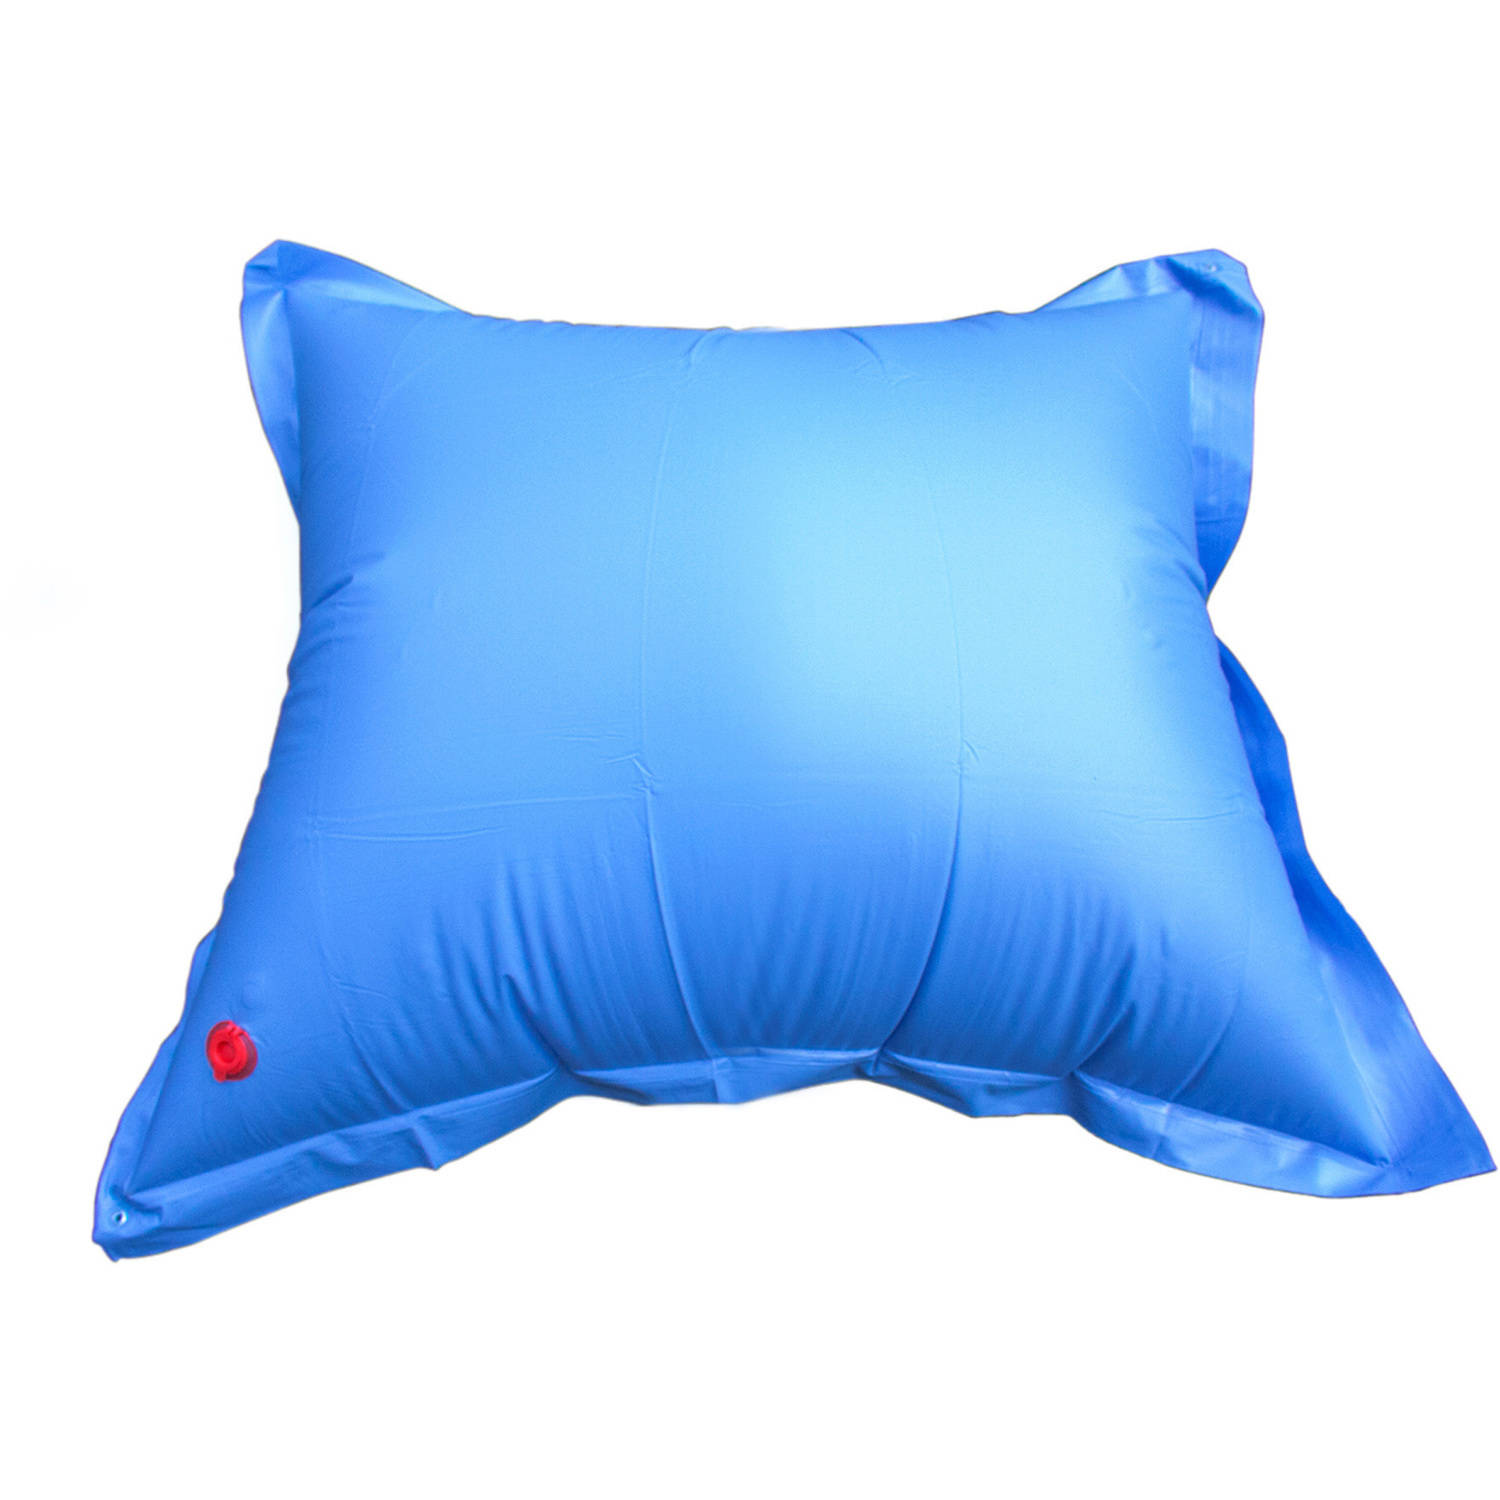 Deluxe 4' x 4' Ice Equalizer Air Pillow for Above-Ground Winter Pool Covers